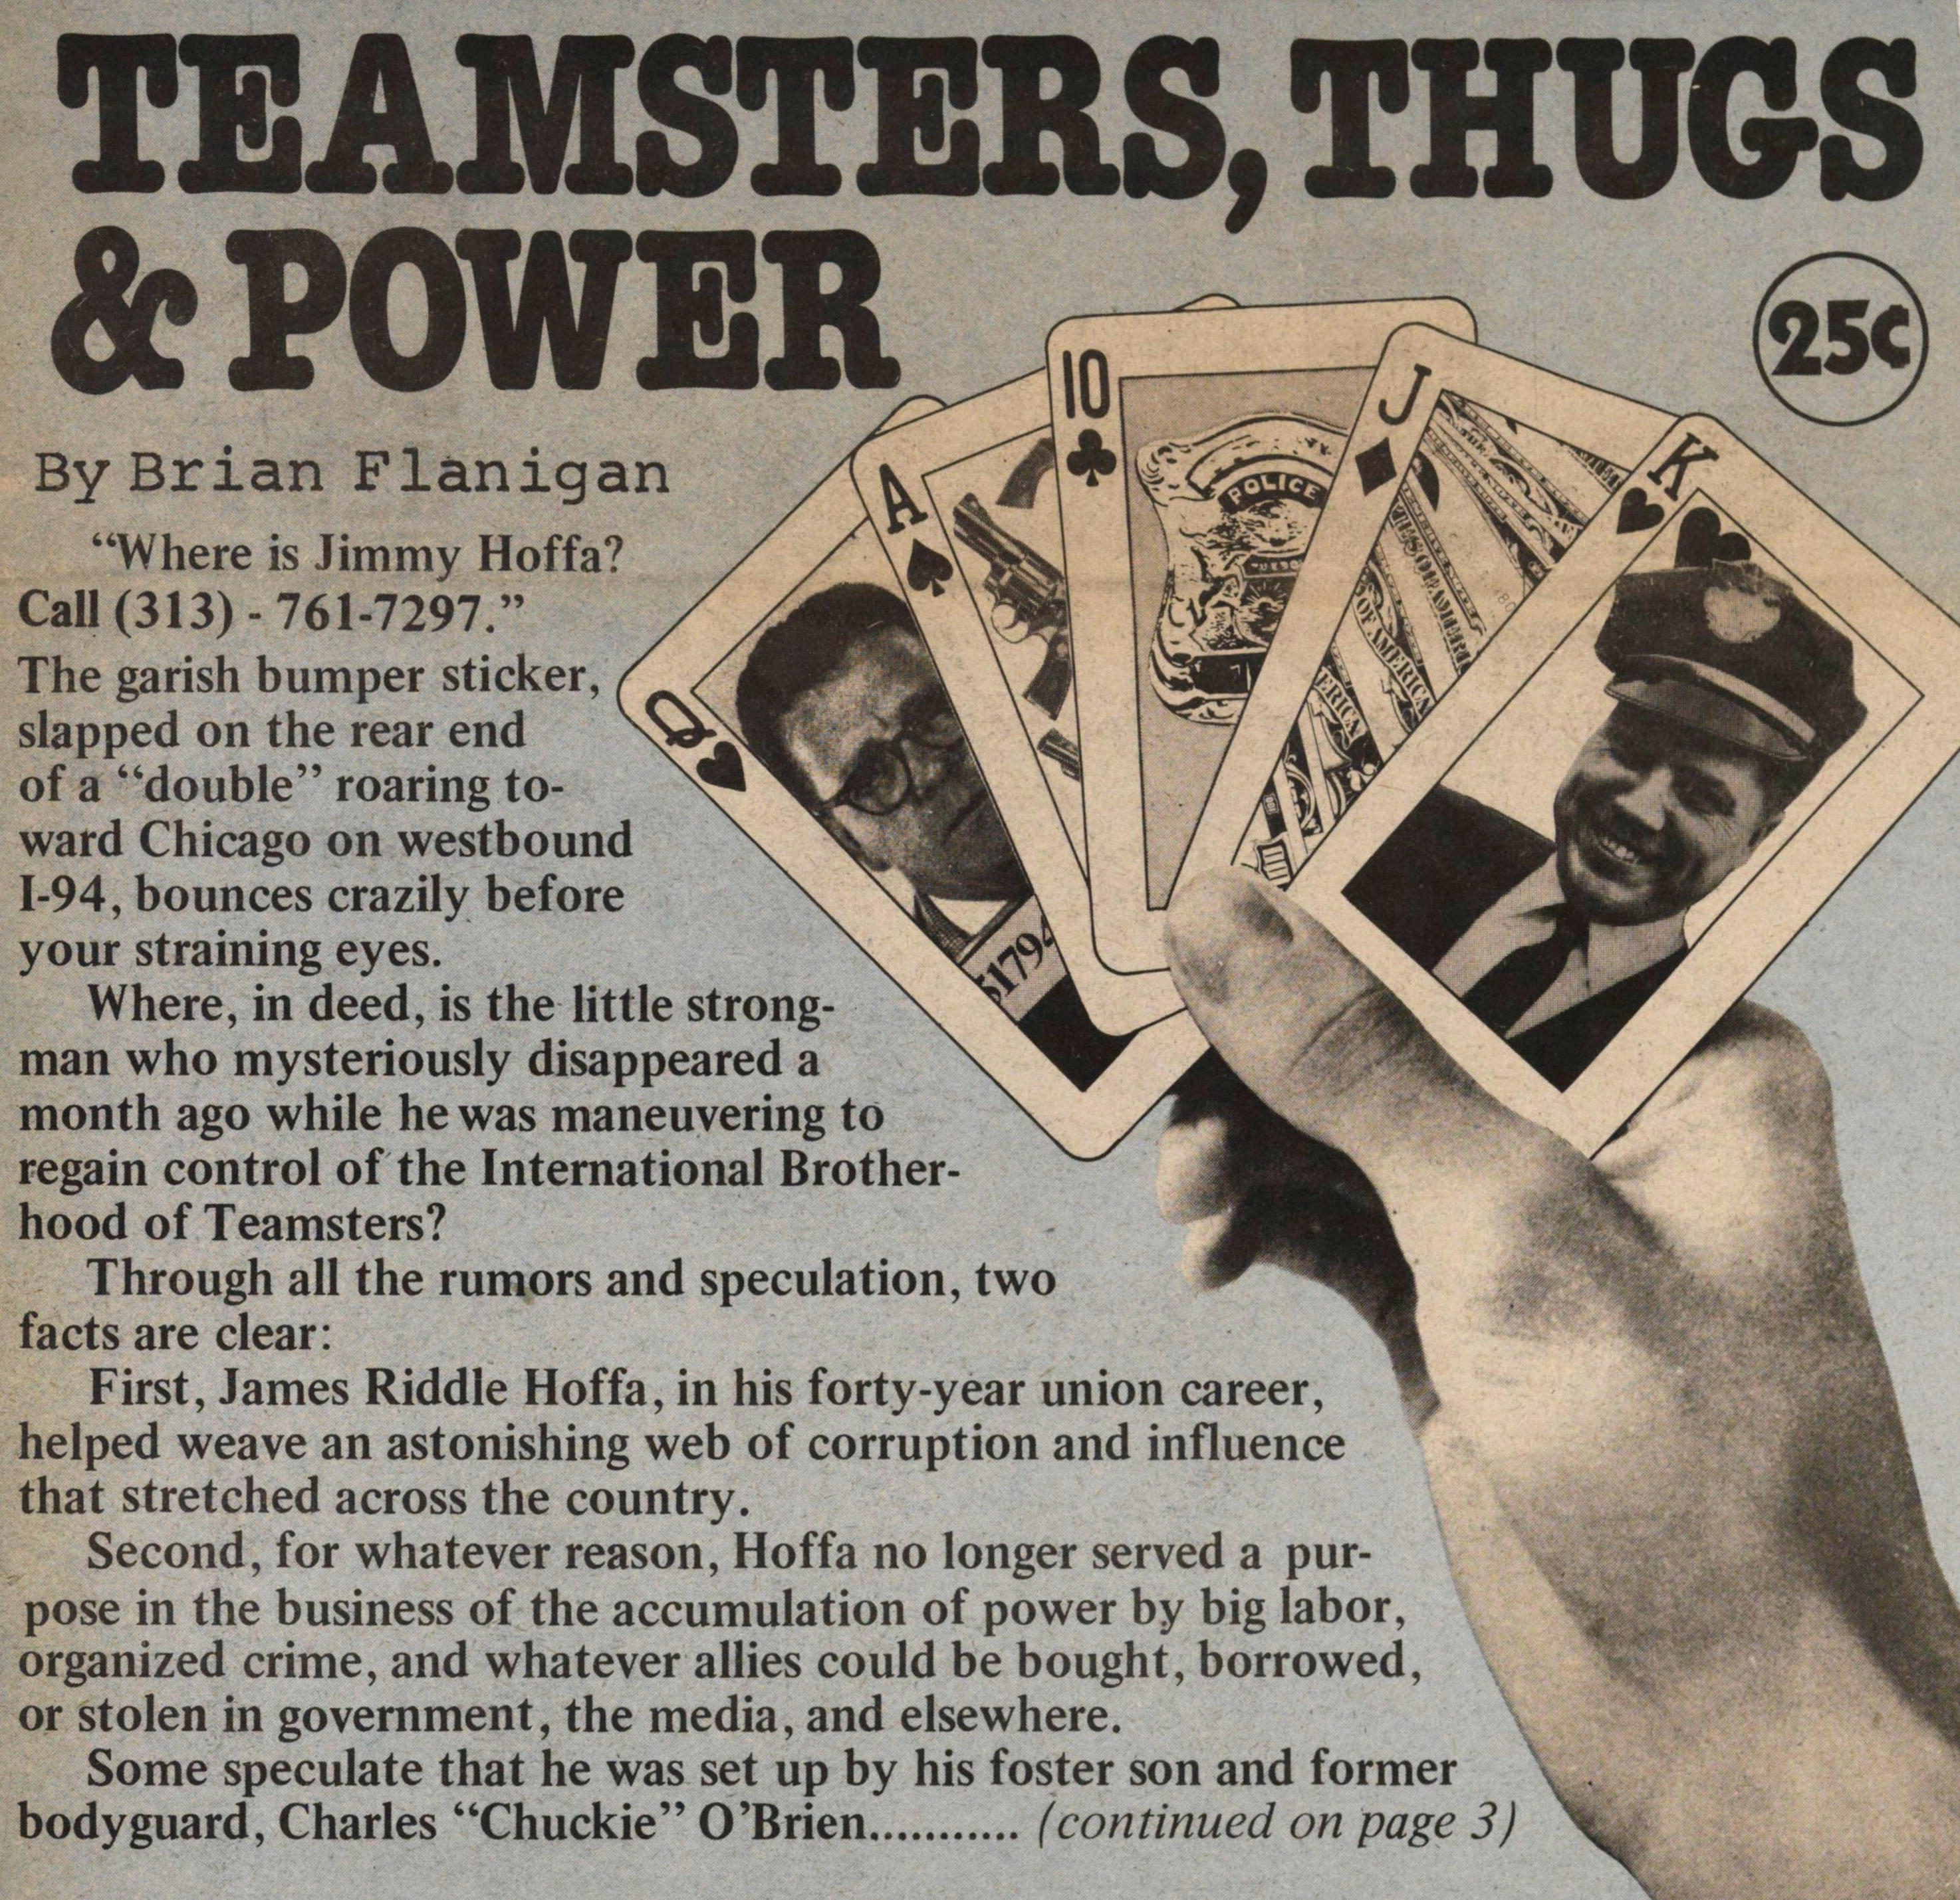 Teamsters, Thugs & Power | Ann Arbor District Library